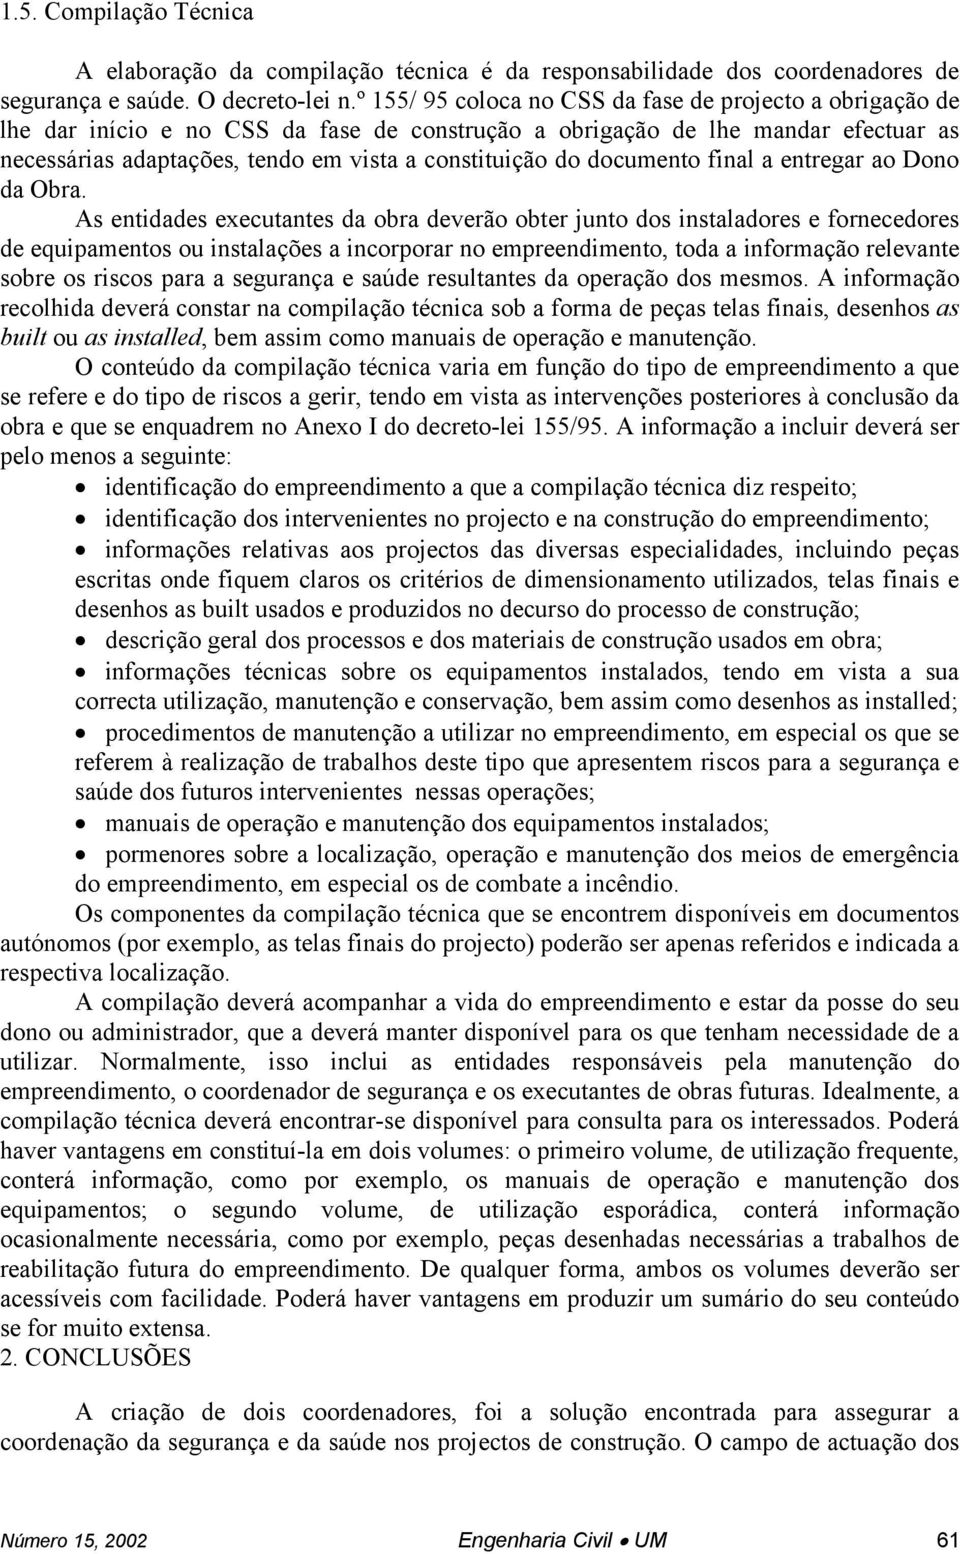 documento final a entregar ao Dono da Obra.